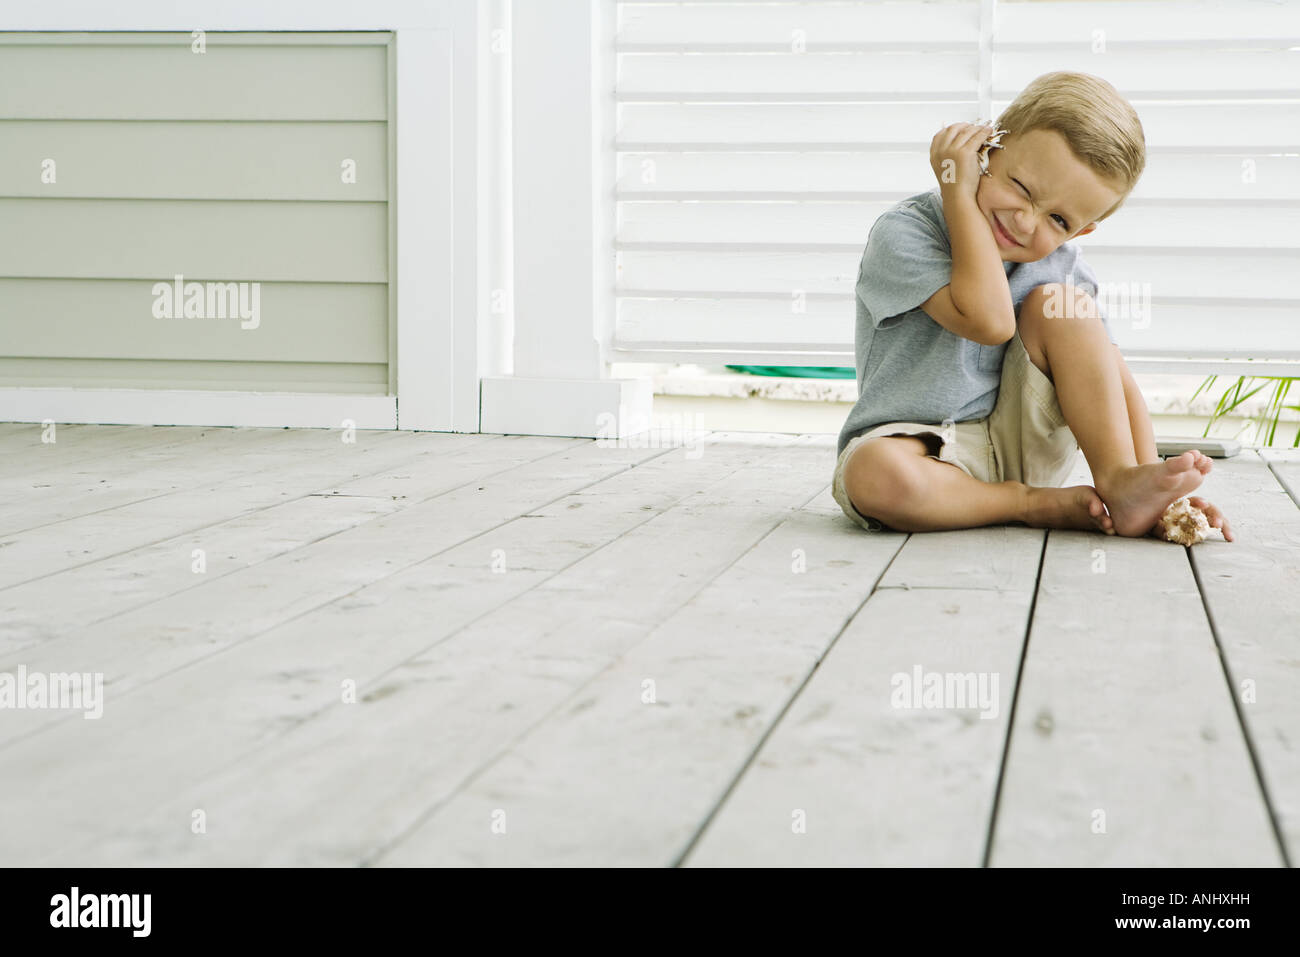 Boy sitting on the ground listening to seashell, squinting at camera, smiling - Stock Image